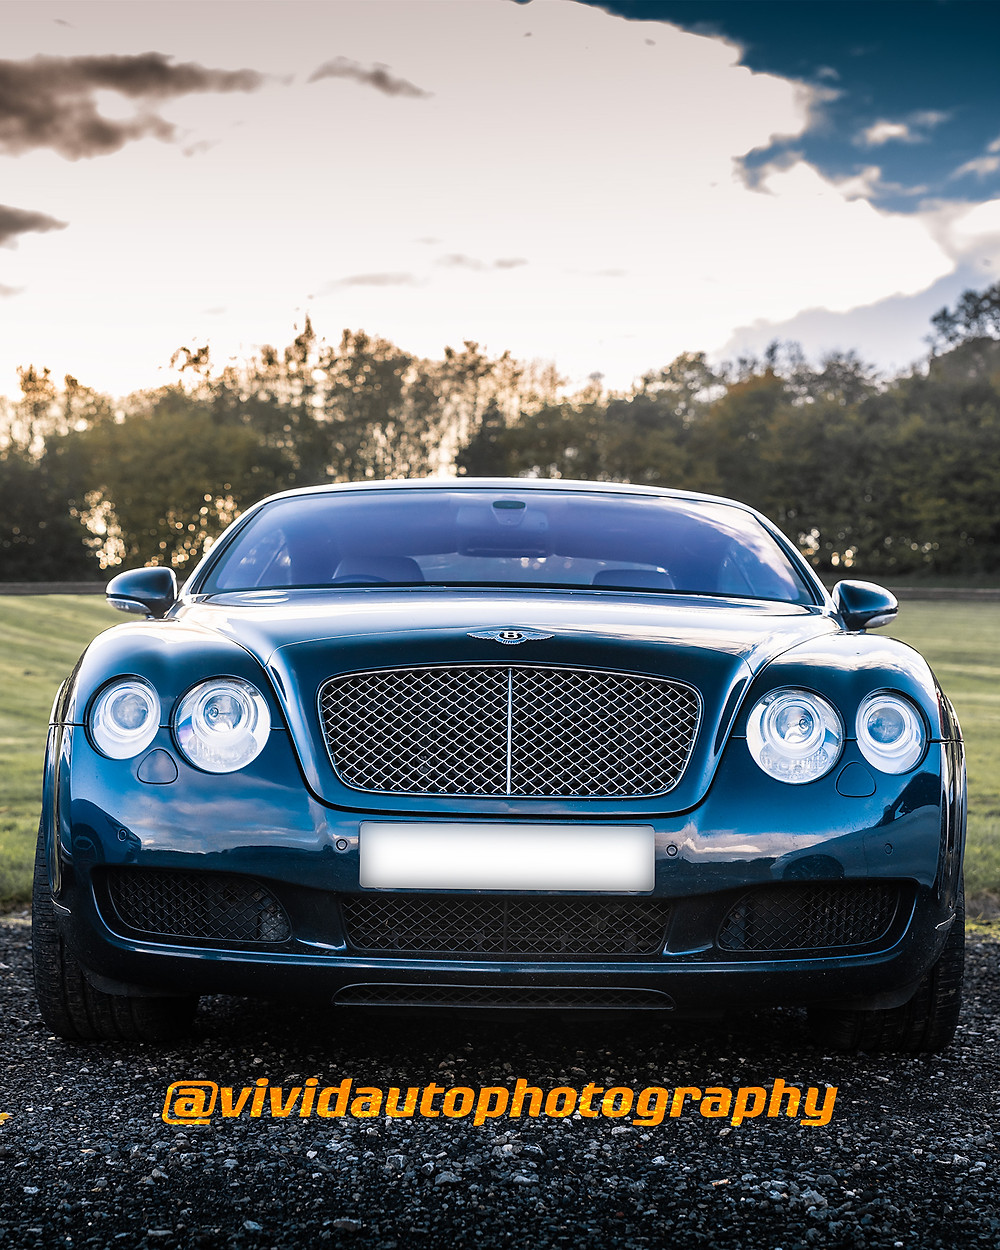 Bentley Continental GT | Dark Blue Metallic | Oulton Park